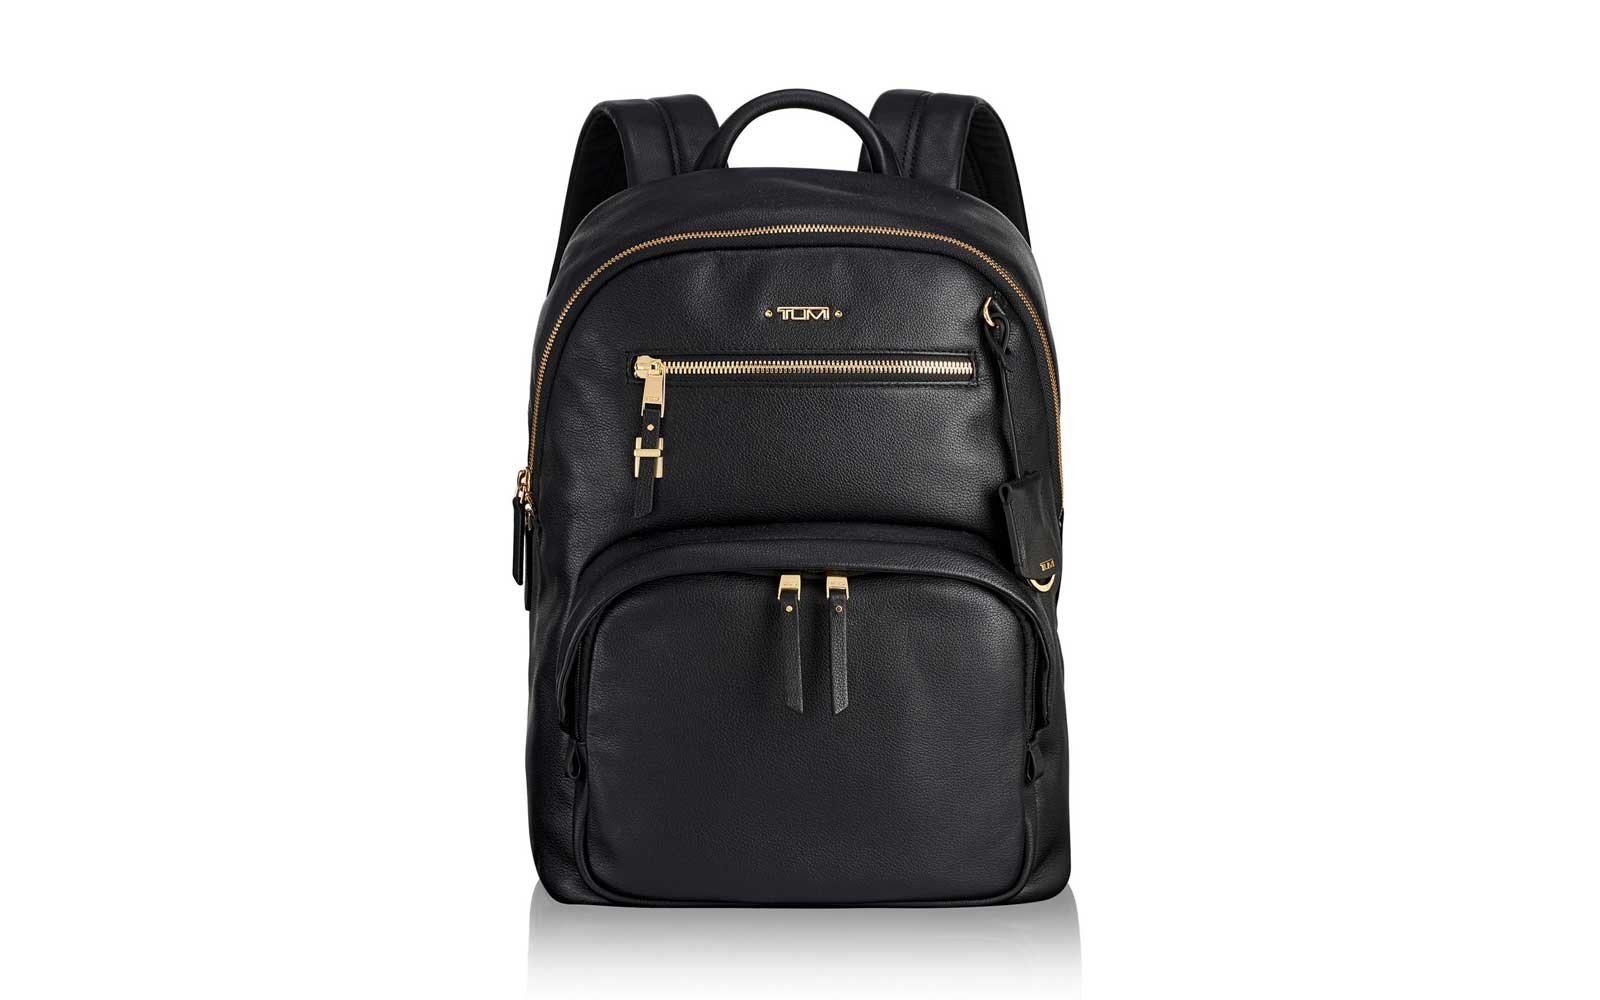 Tumi Black Leather Backpack